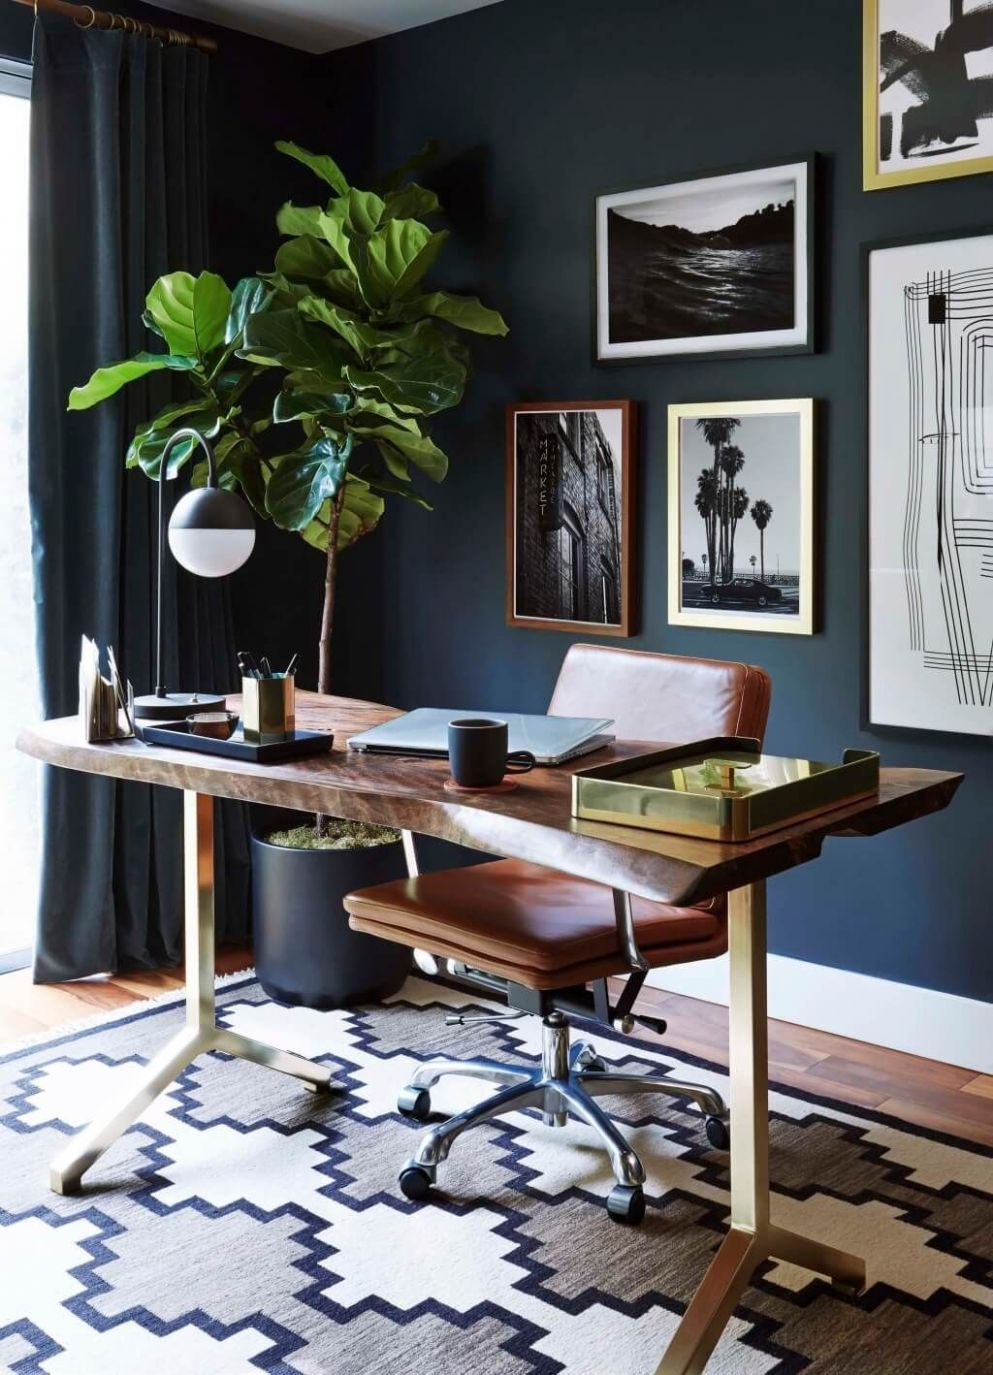 How to Choose a Rug: Rug Placement & Size Guide | Masculine home ..